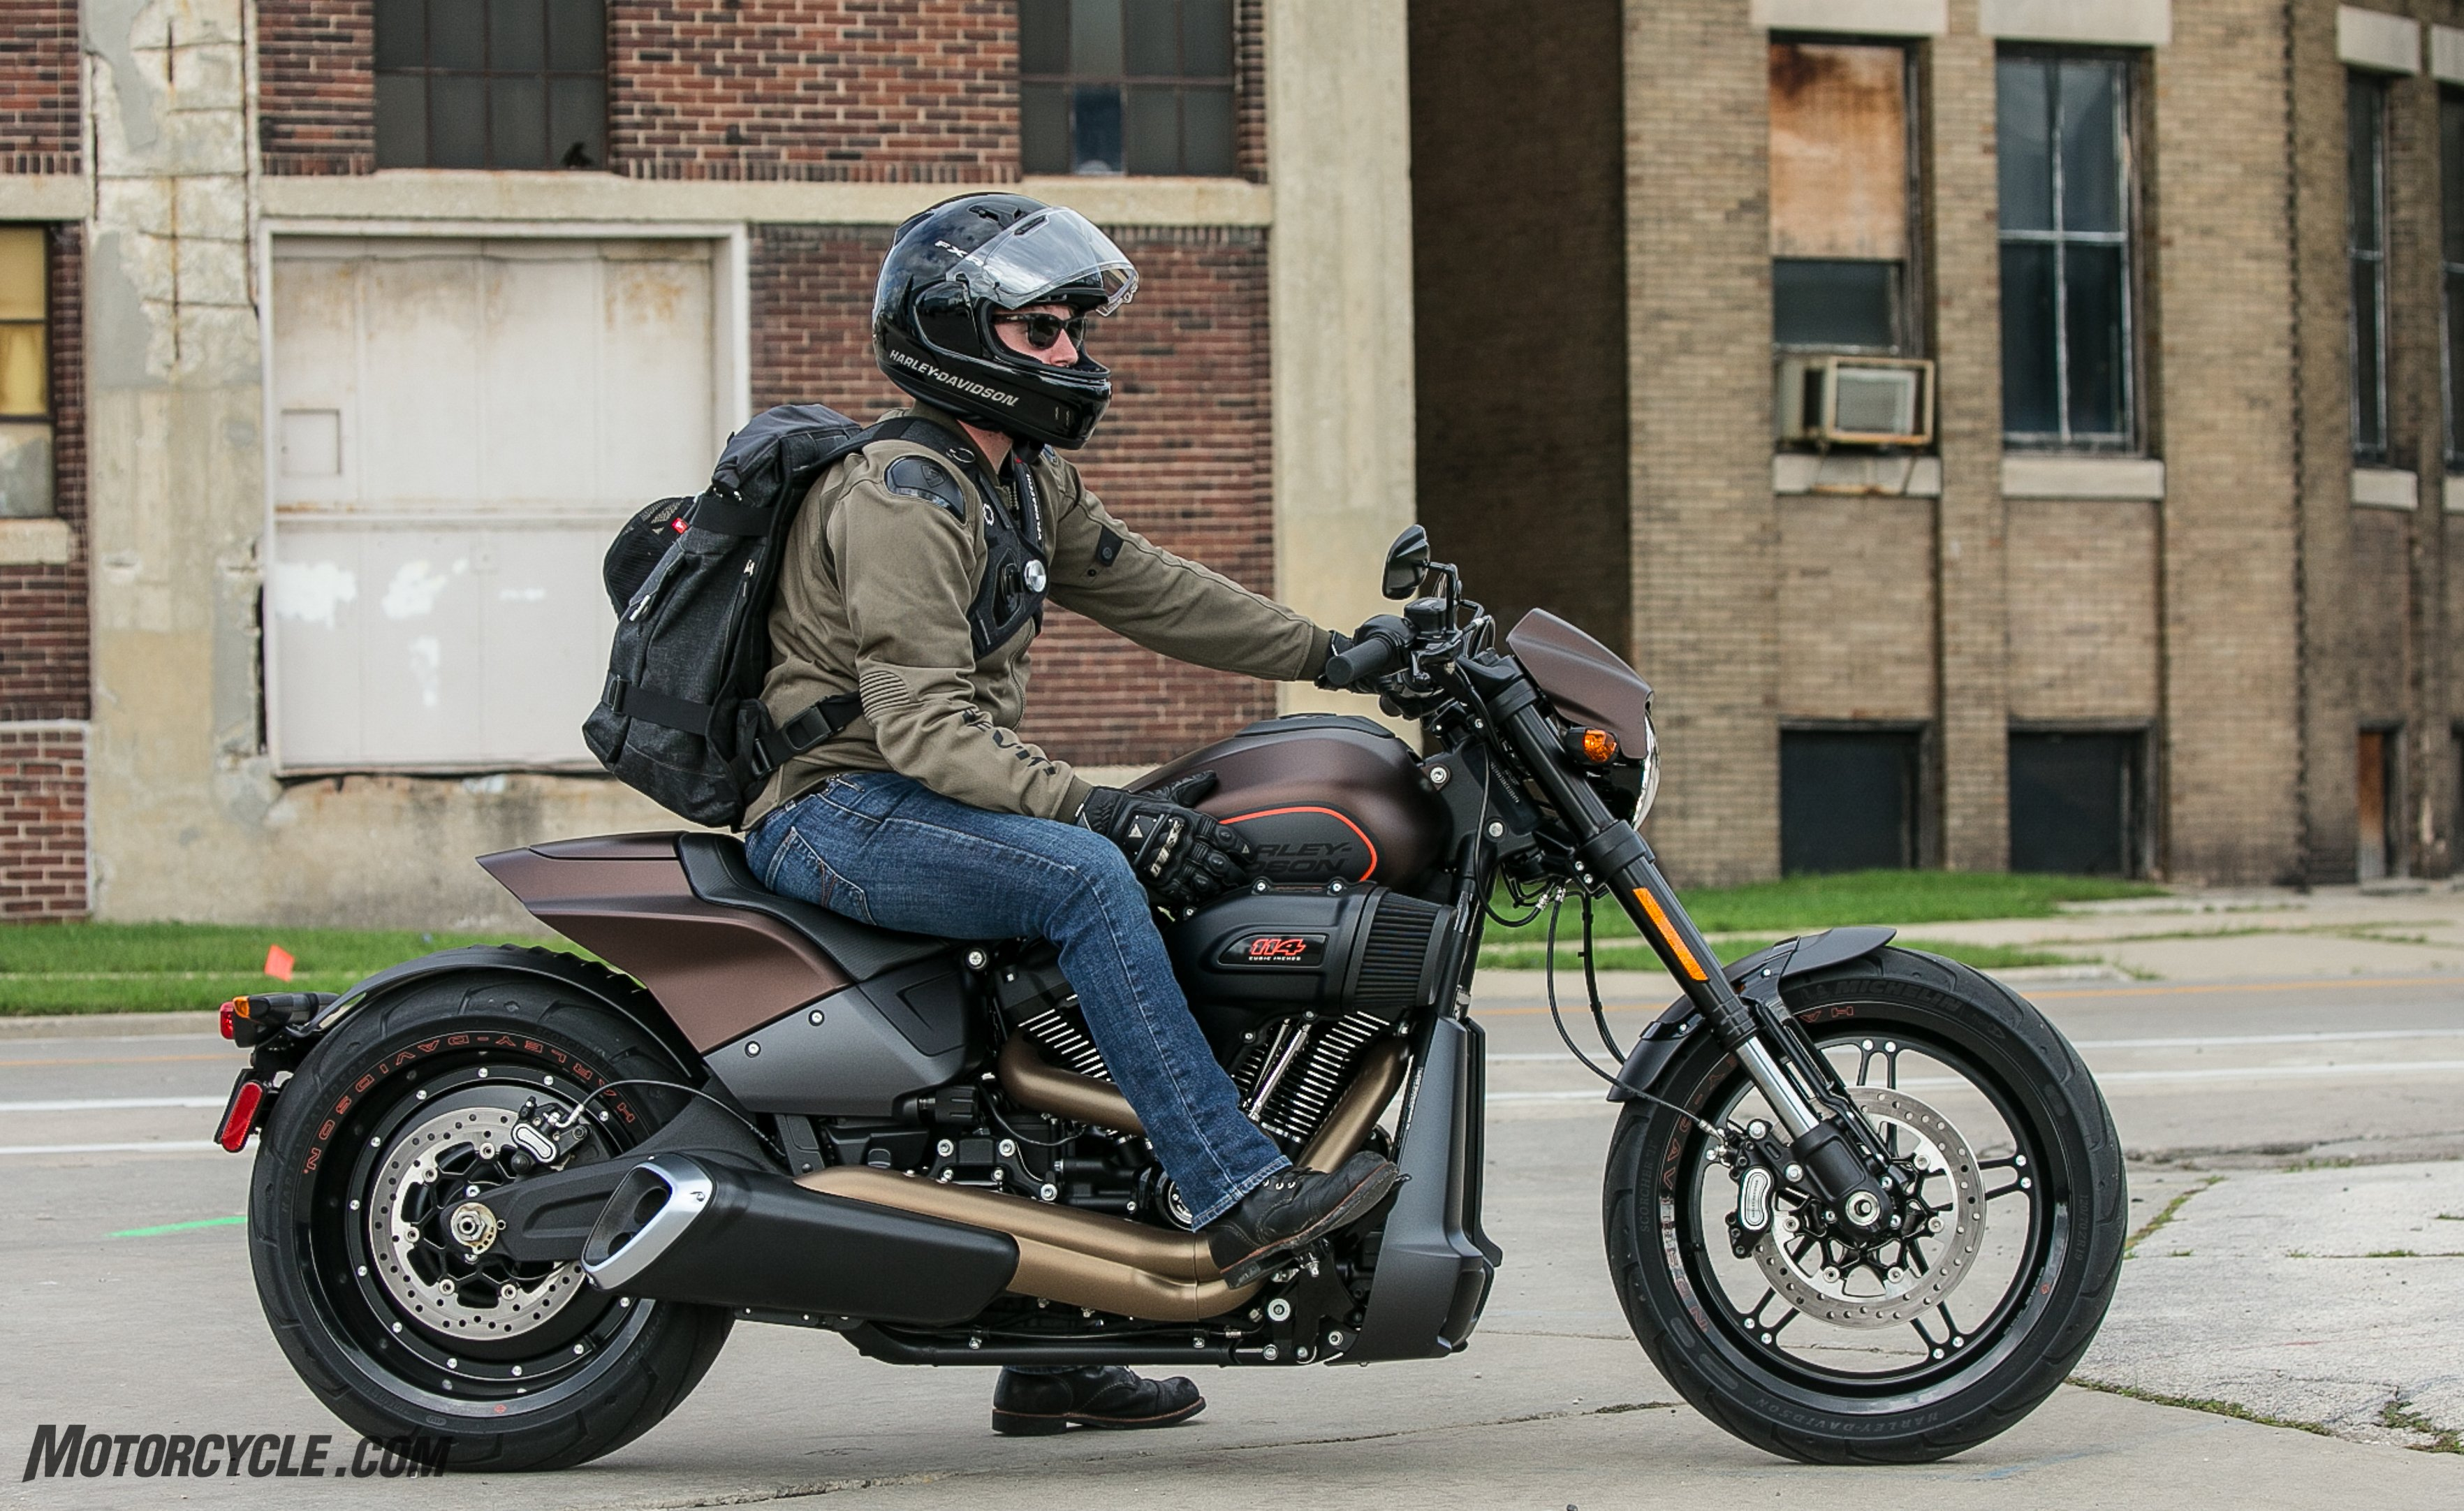 New Models 2019 Harley Davidson Fxdr 114 Review: 2019 Harley-Davidson FXDR 114 Review